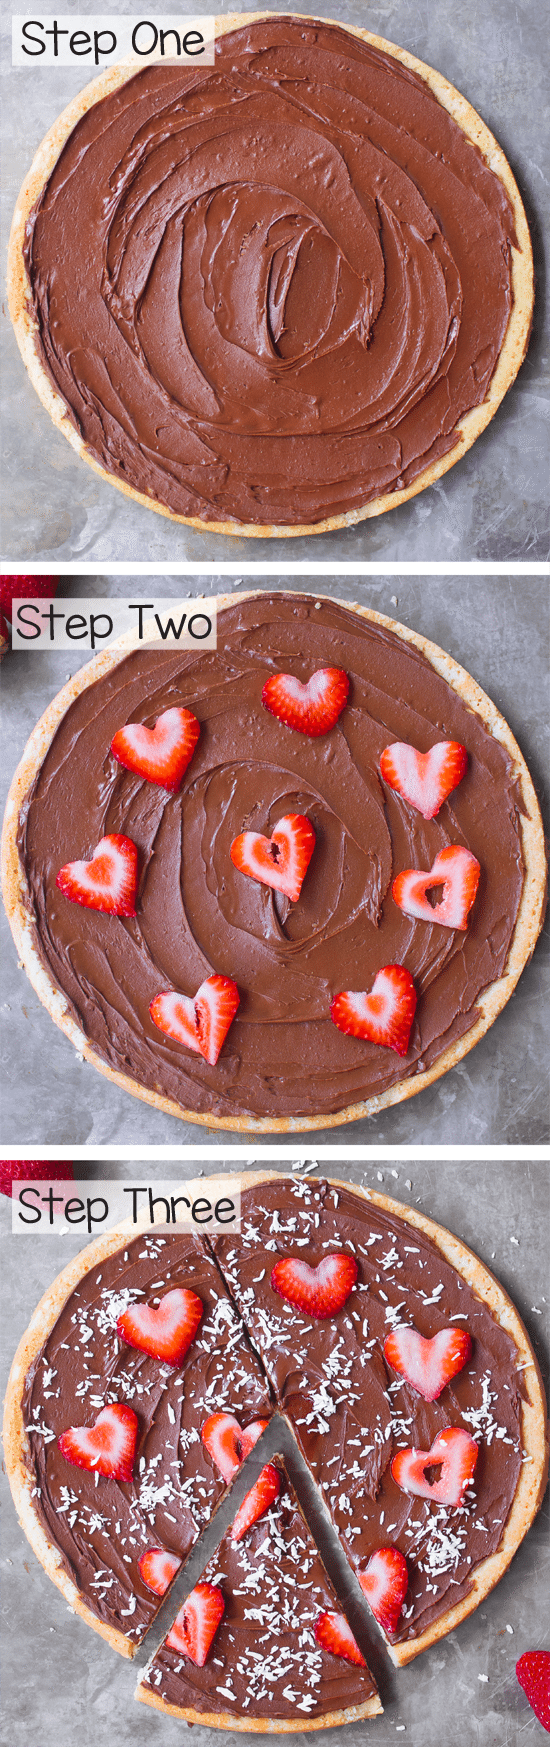 A simple dessert pizza recipe, can be flourless, vegan, paleo, gluten-free, and sugar-free.